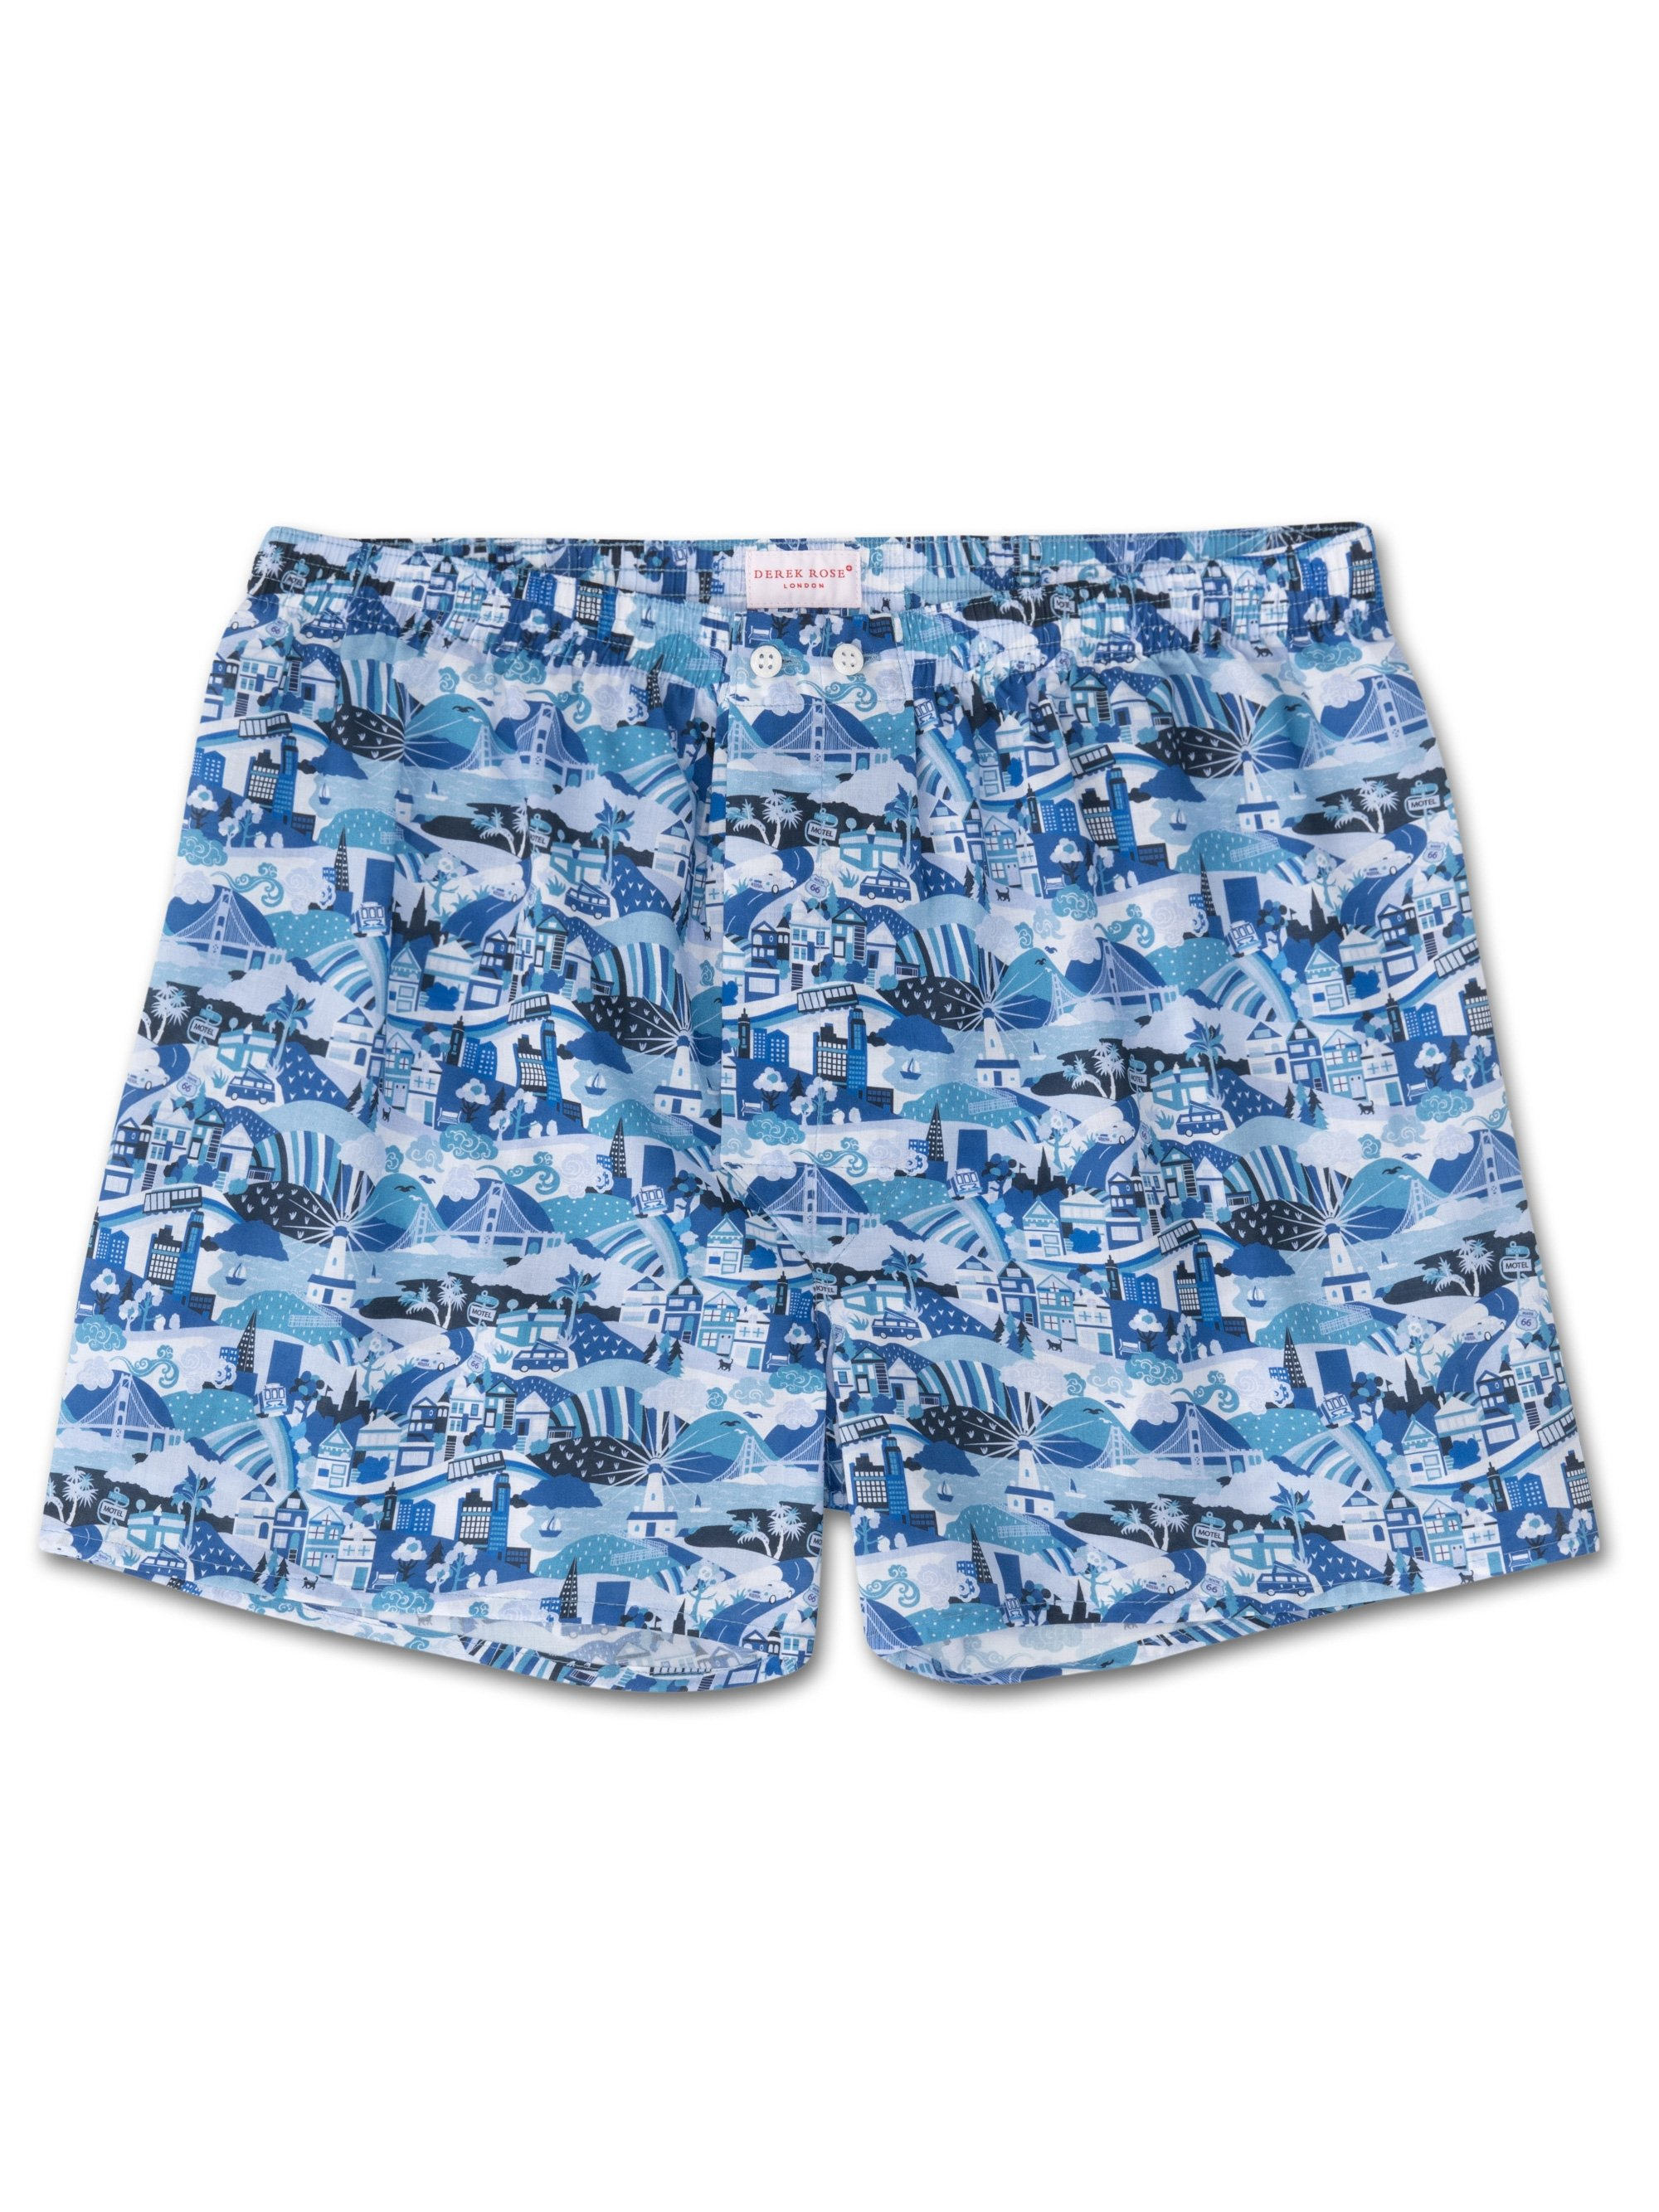 Men's Classic Fit Boxer Shorts Ledbury 19 Cotton Batiste Blue